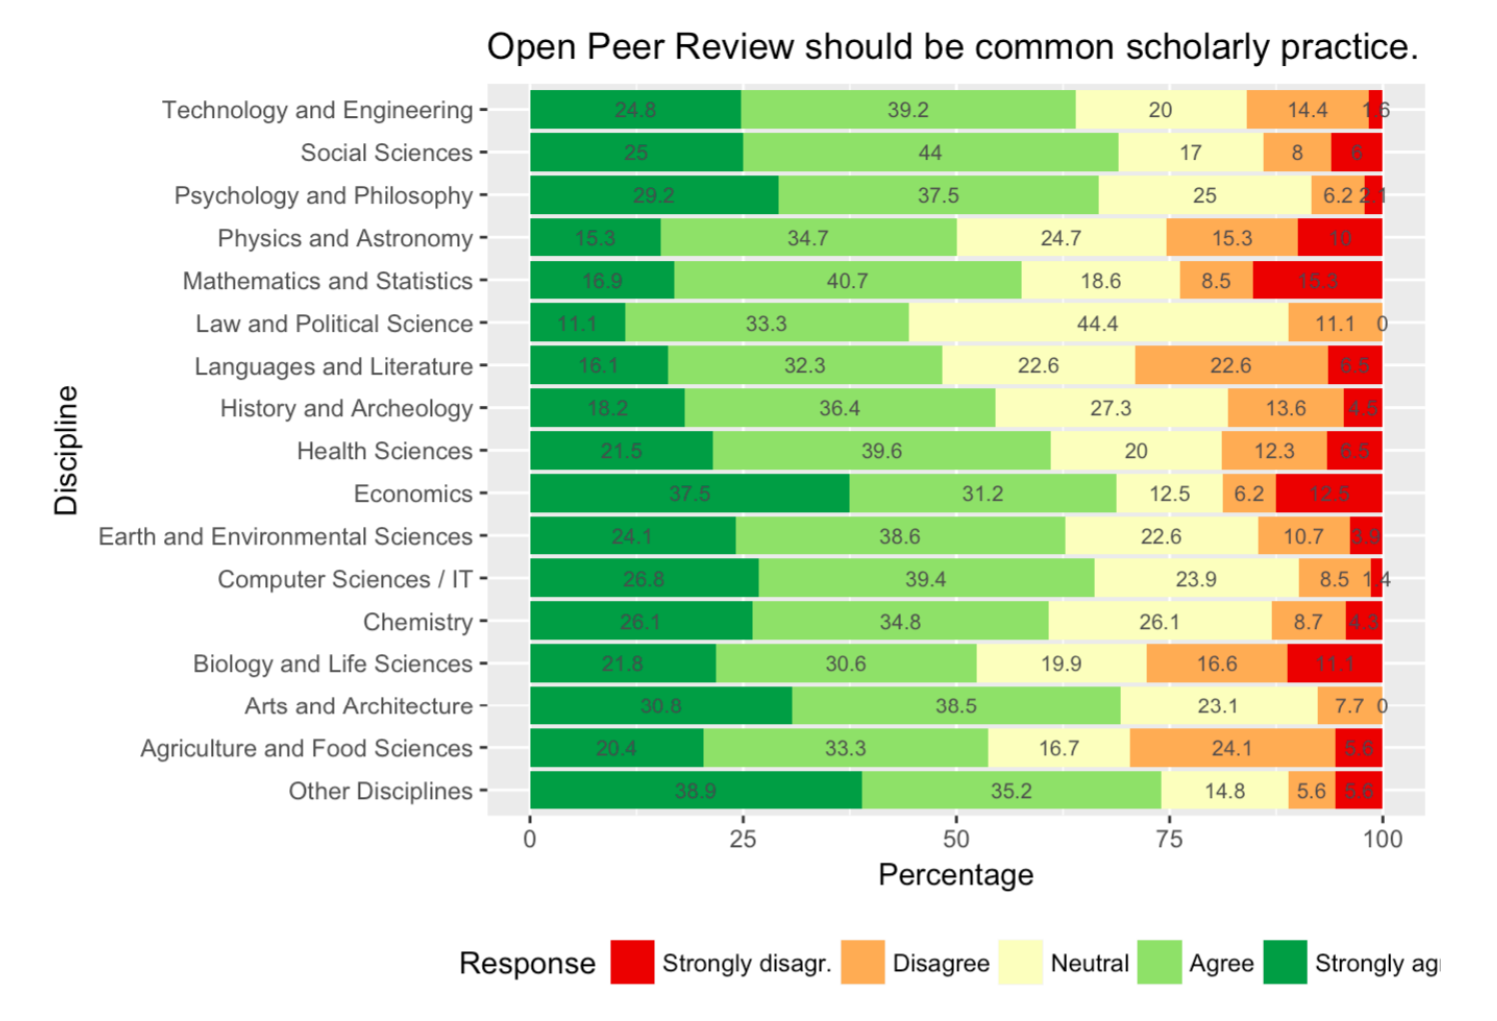 files/images/Open_Peer_Review_Attitudes.PNG